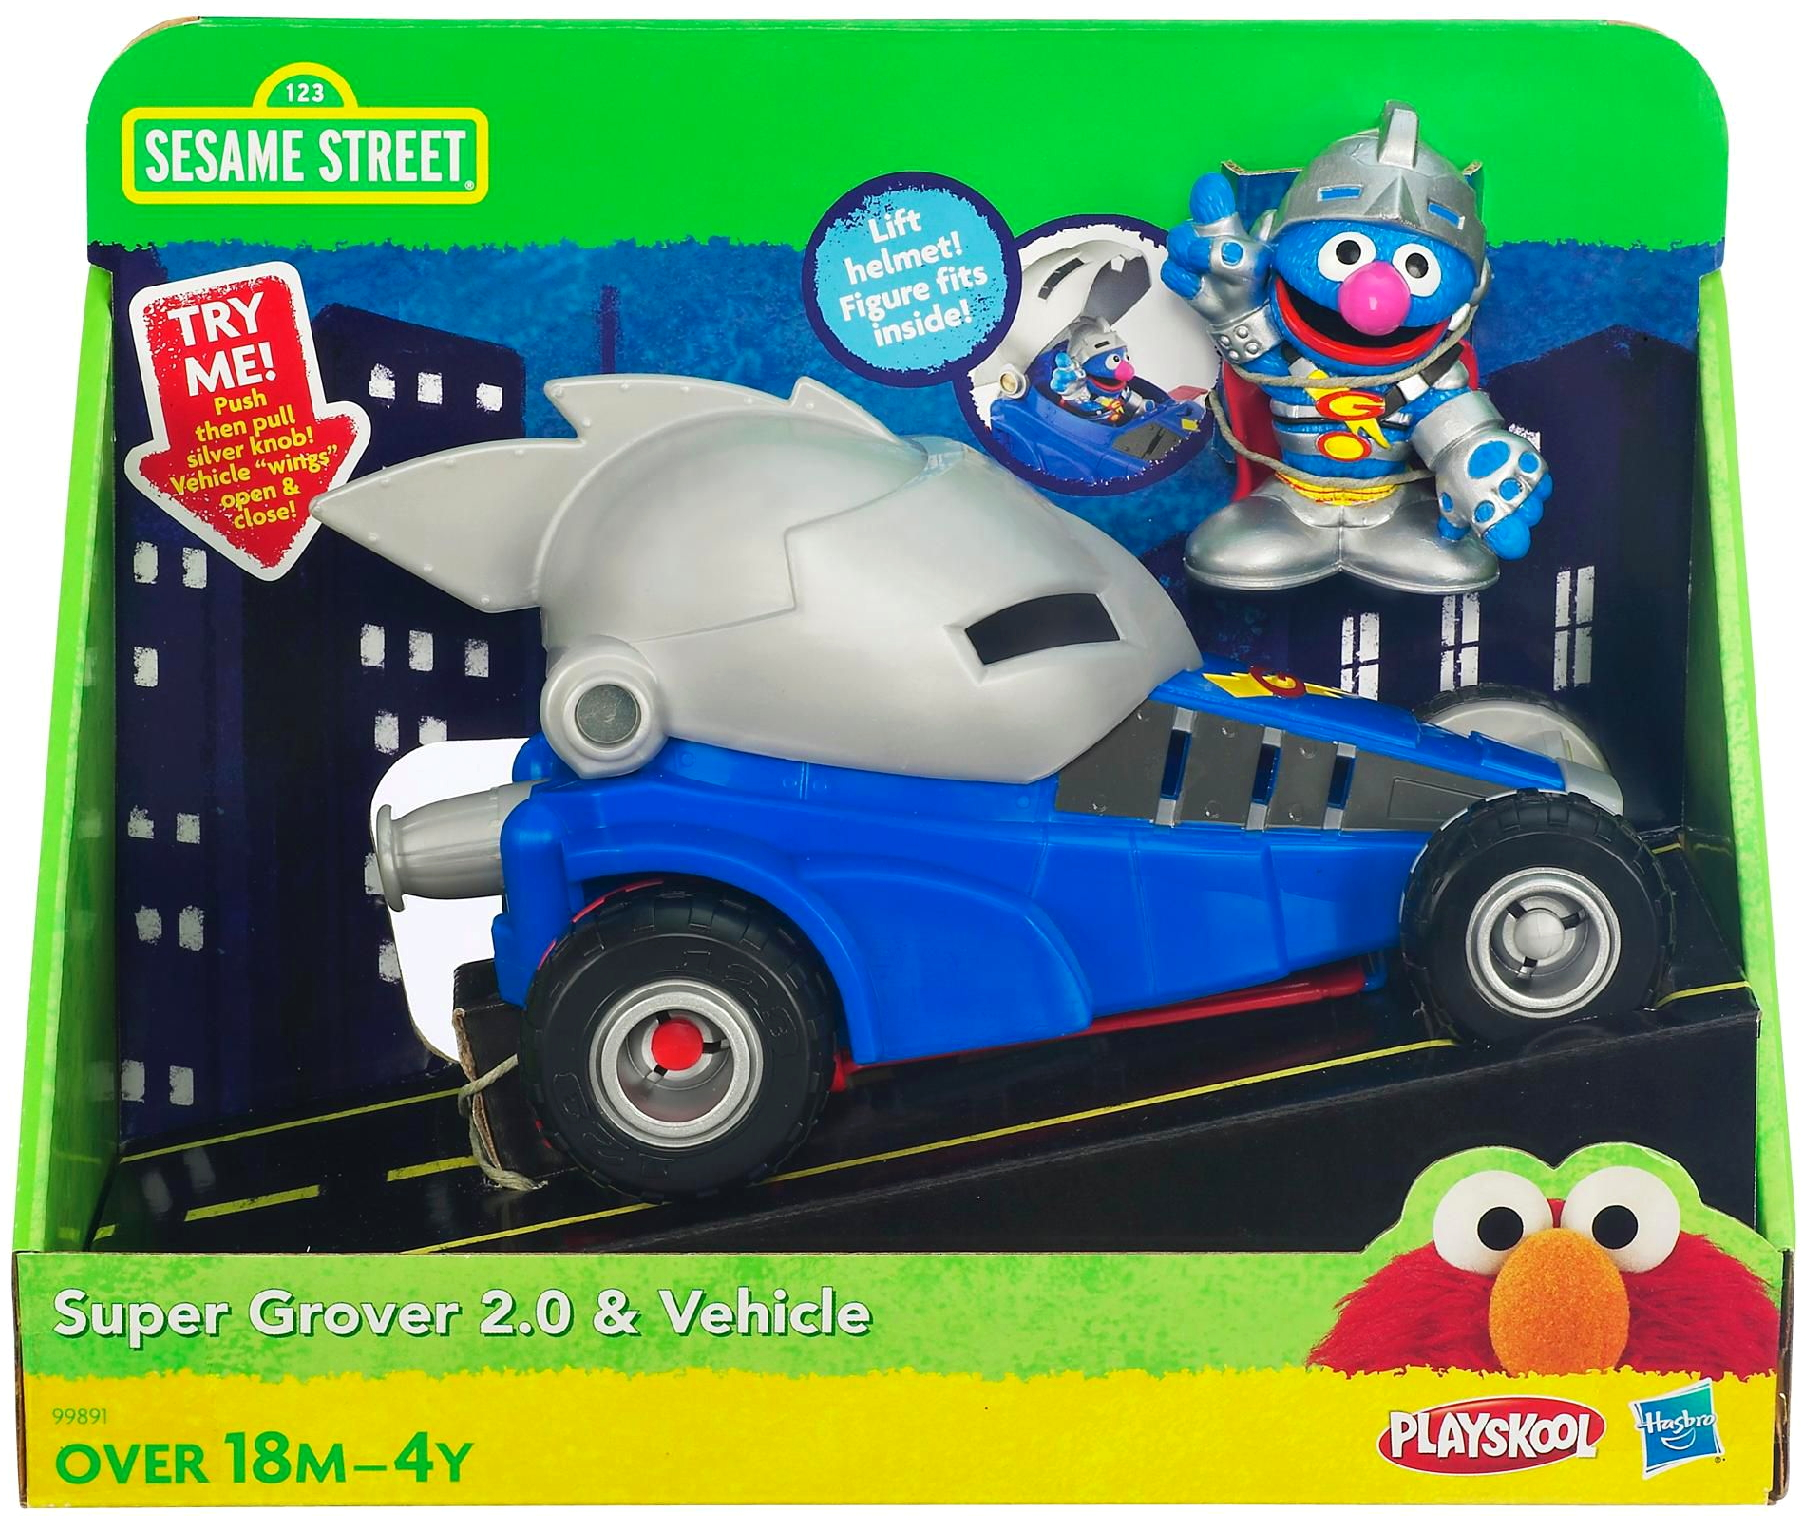 Super Grover 2.0 & Vehicle